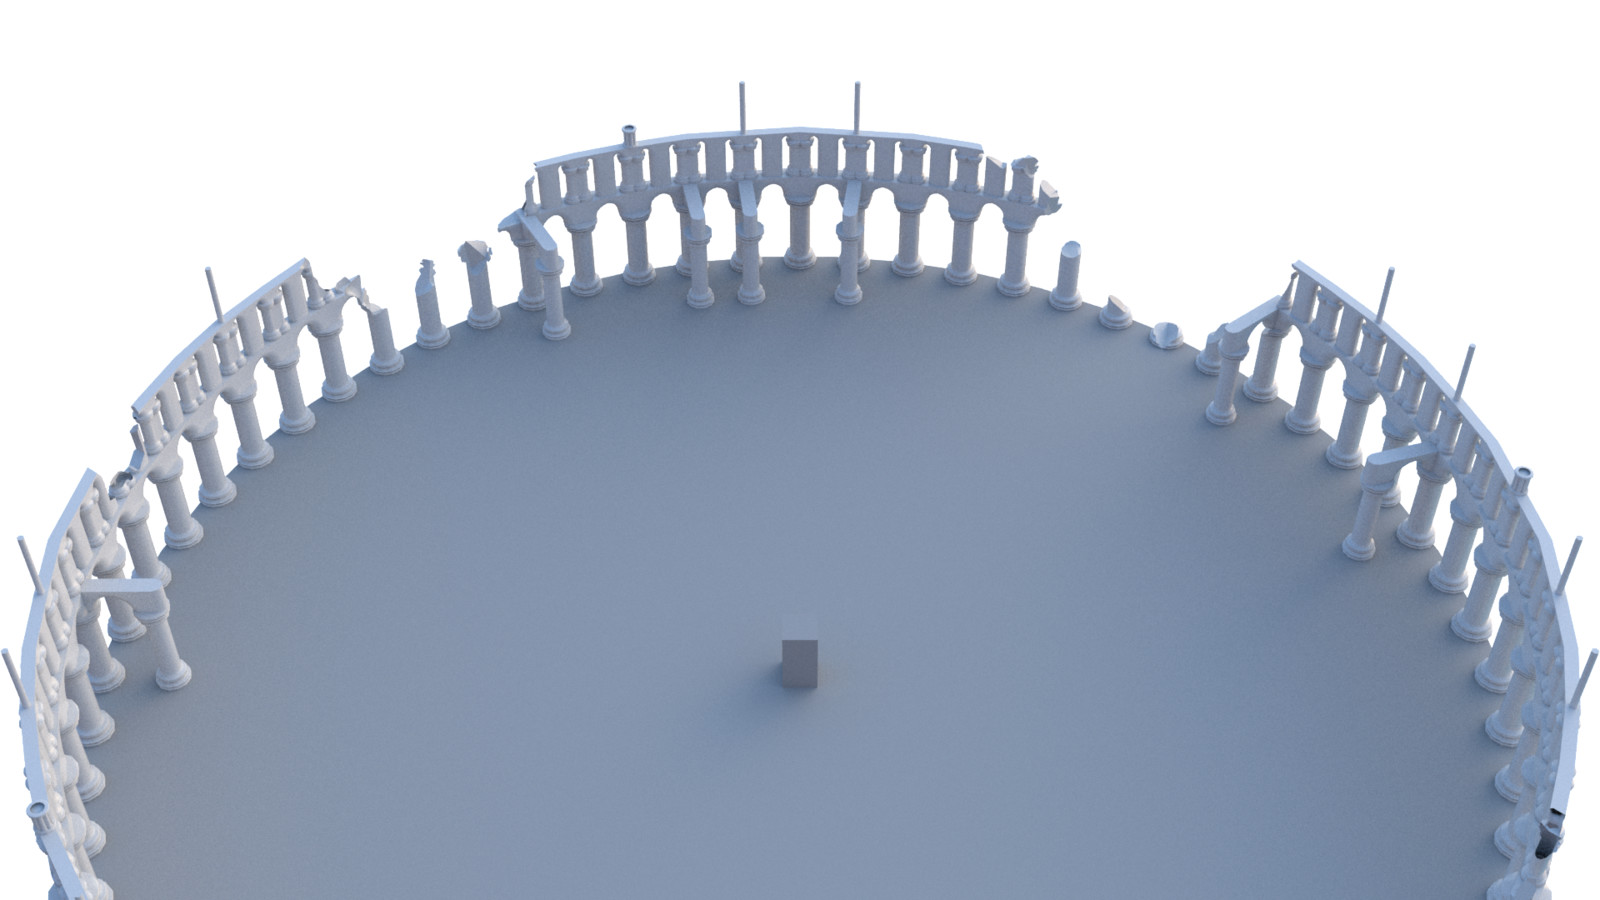 Procedural level tool used to make the level boundries